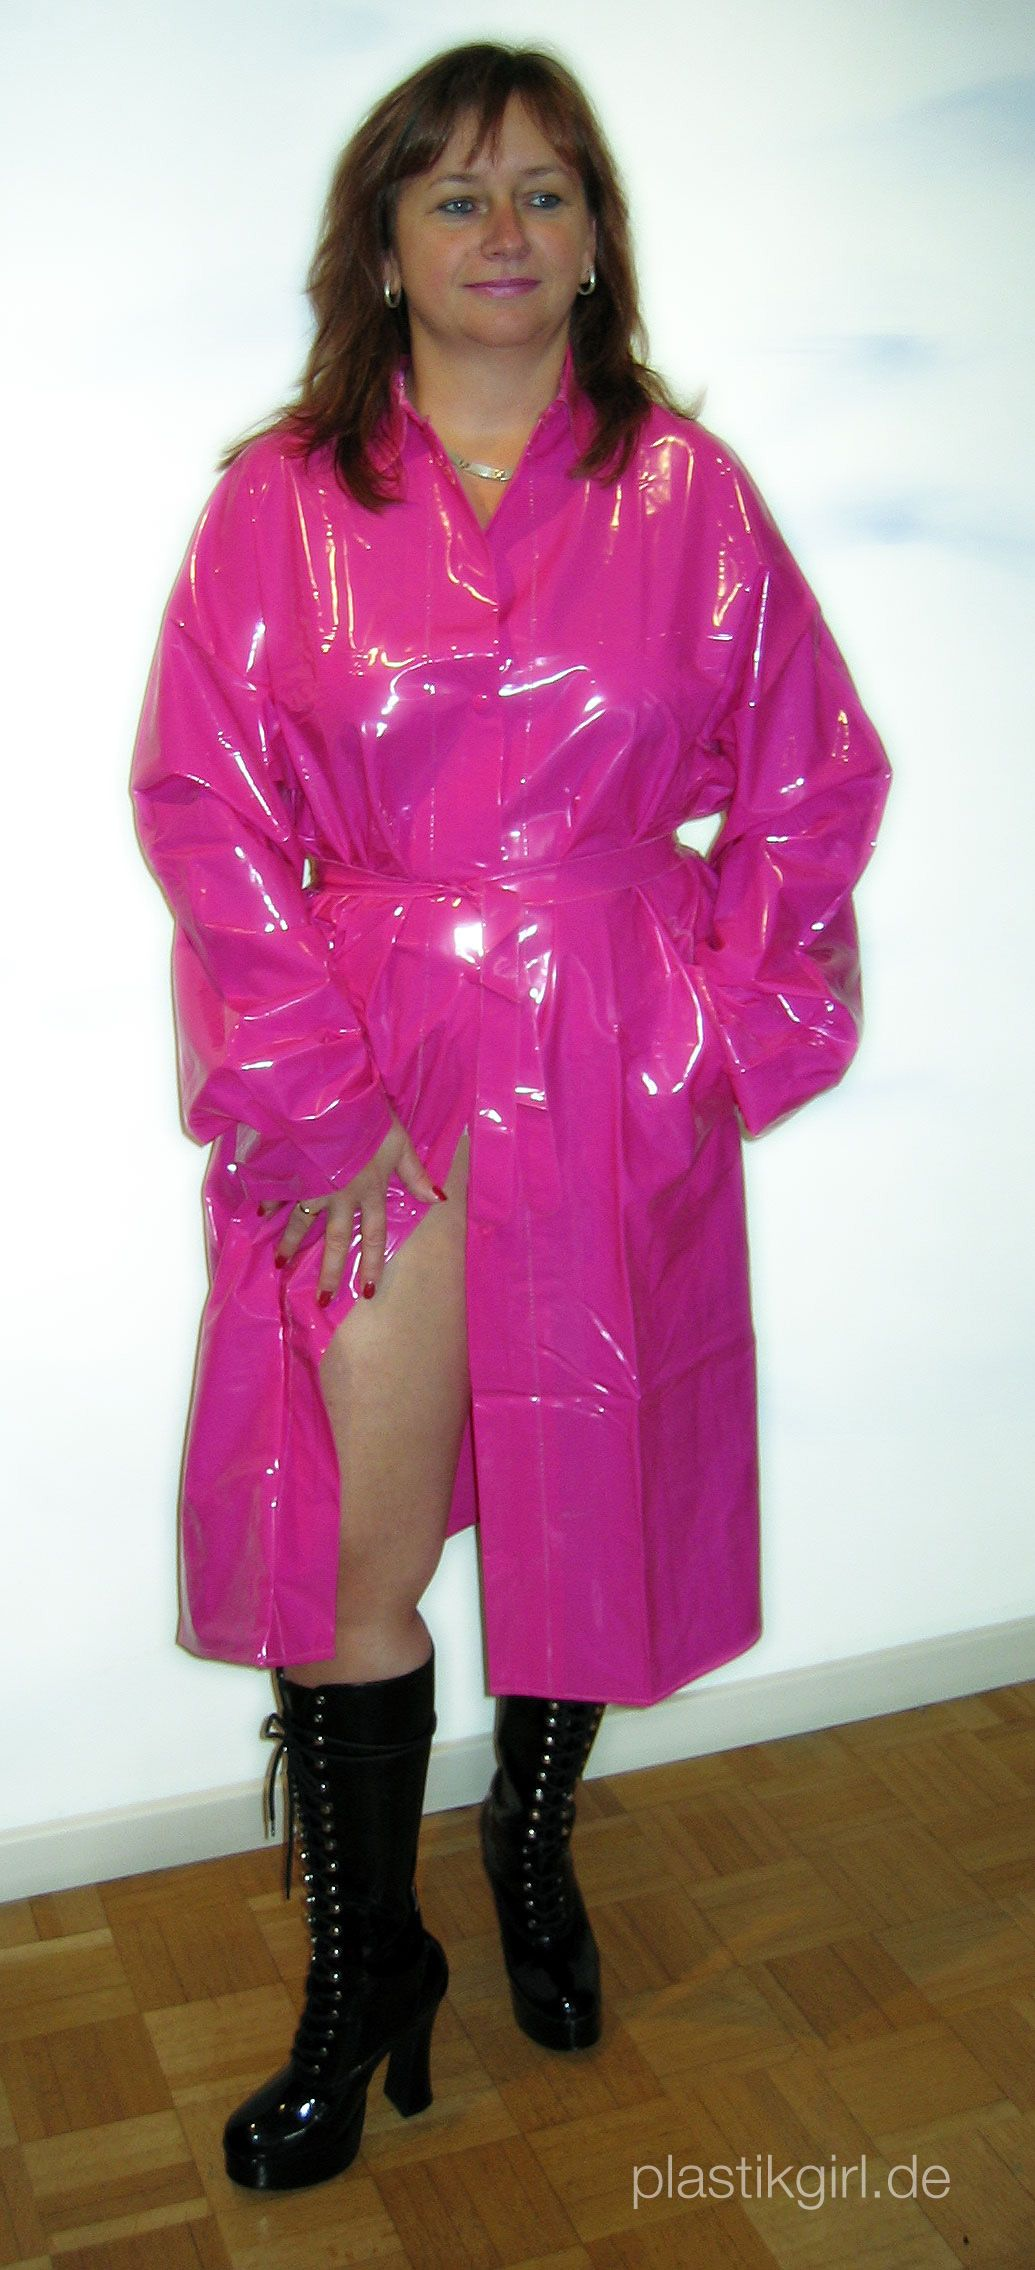 Shiny raincoat pictures